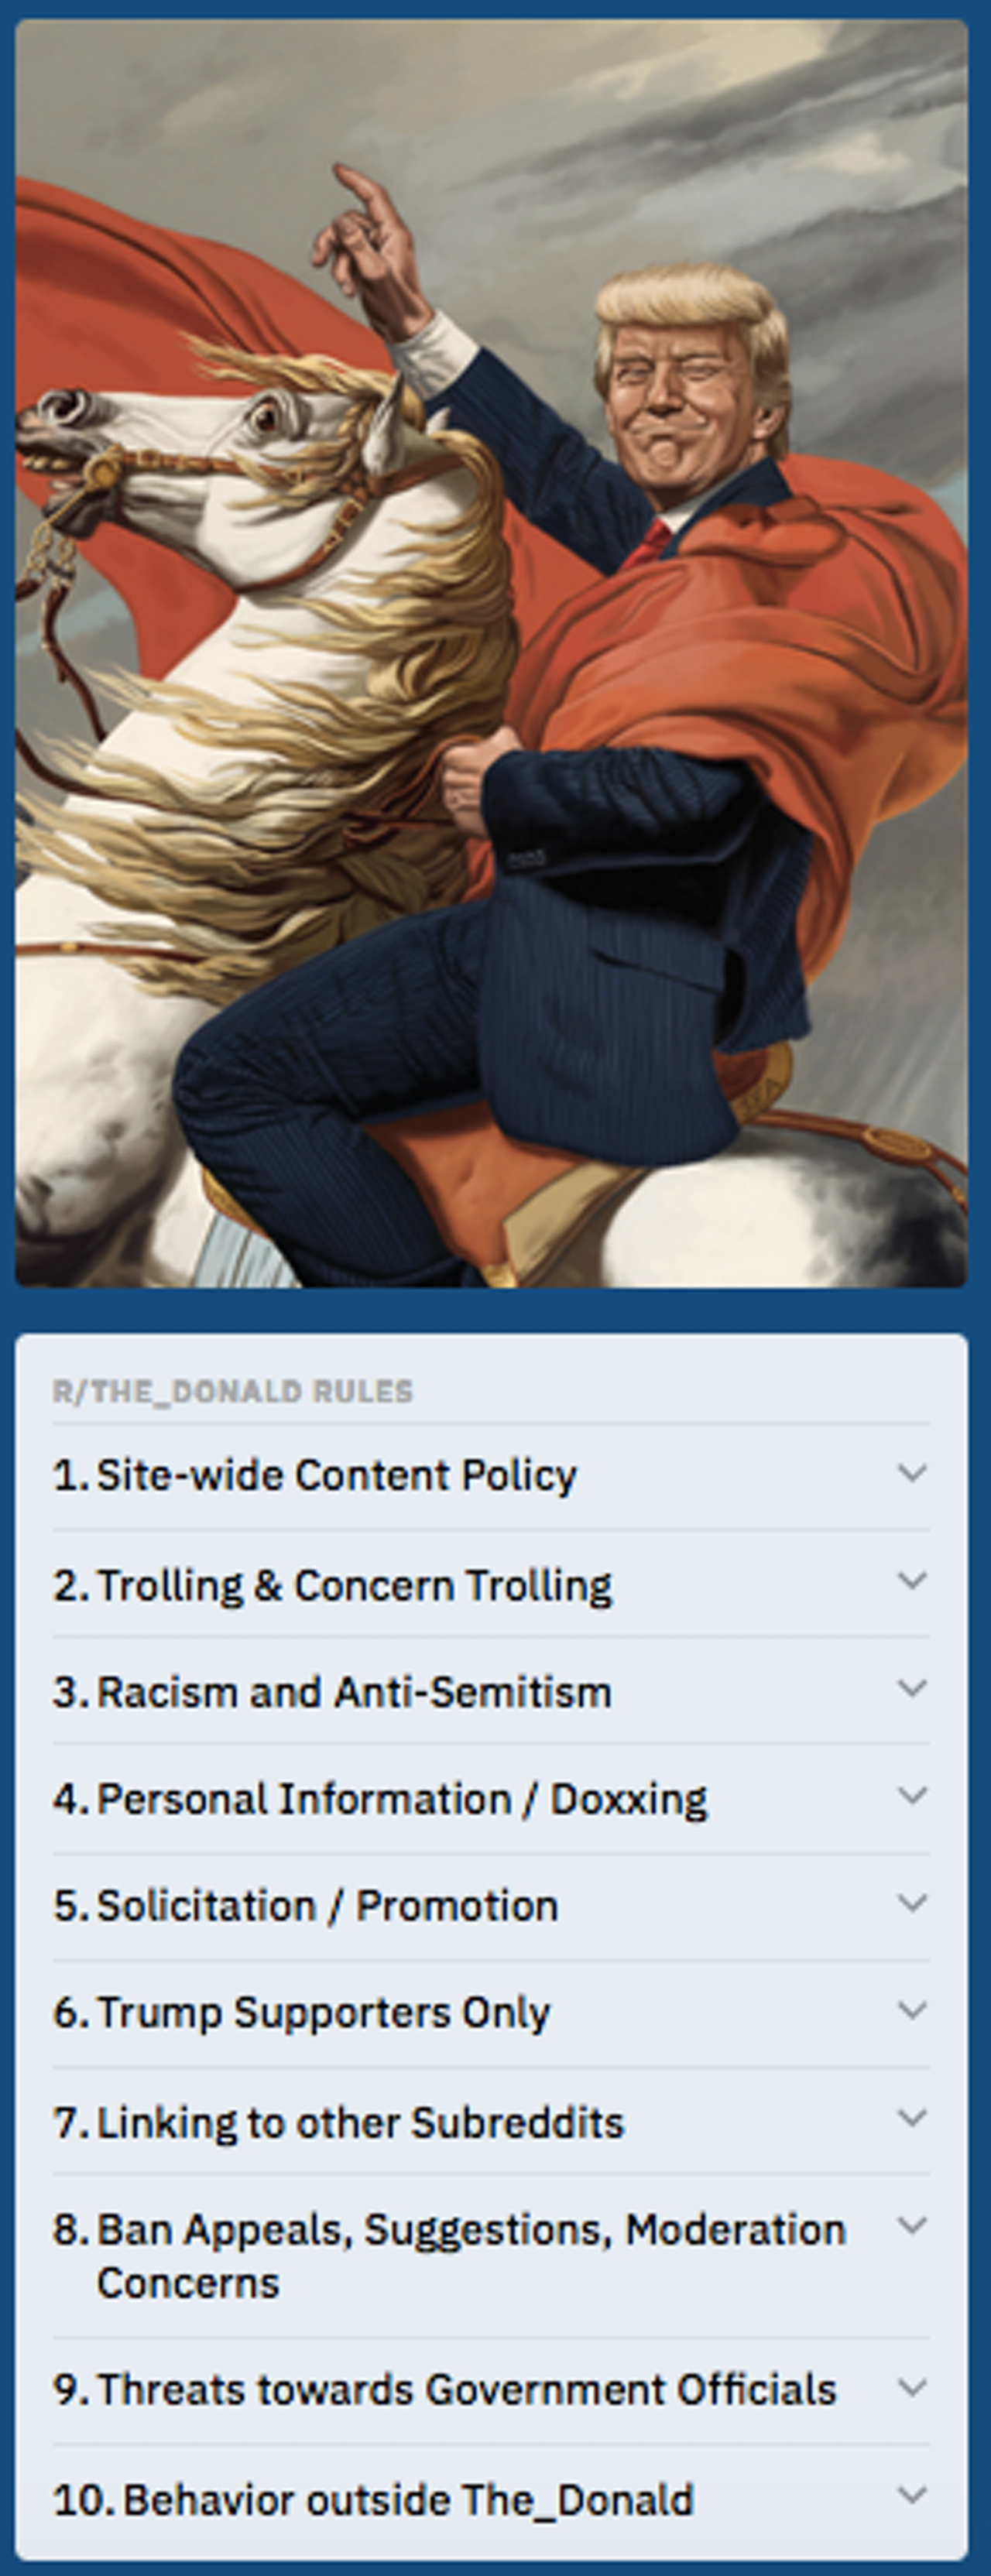 The rules for /r/The_Donald include clauses about cross-linking and harassment.